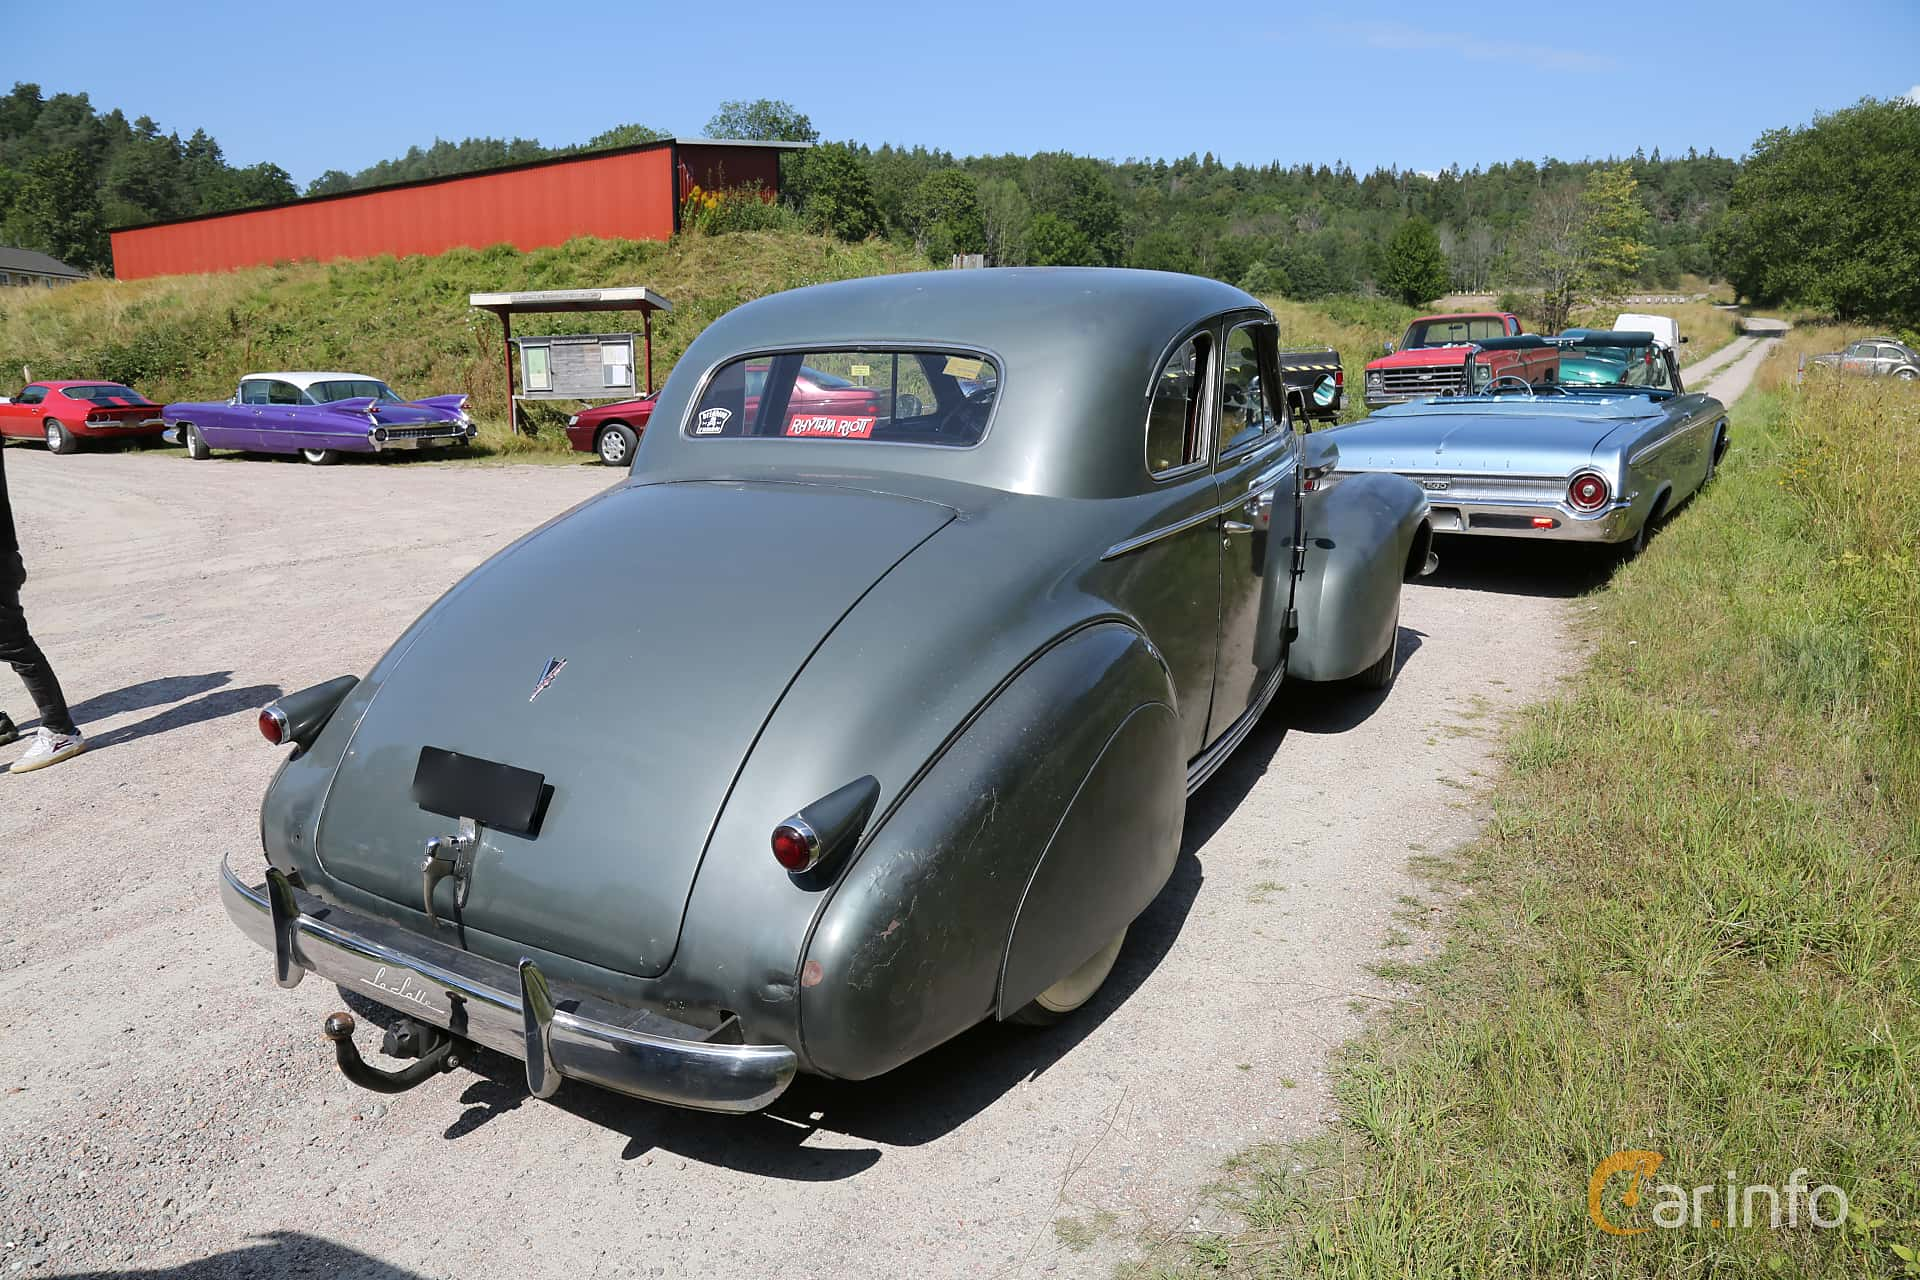 Cadillac LaSalle Coupé 5.3 Manual, 125hp, 1939 at A-bombers - Old Style Weekend Backamo 2019